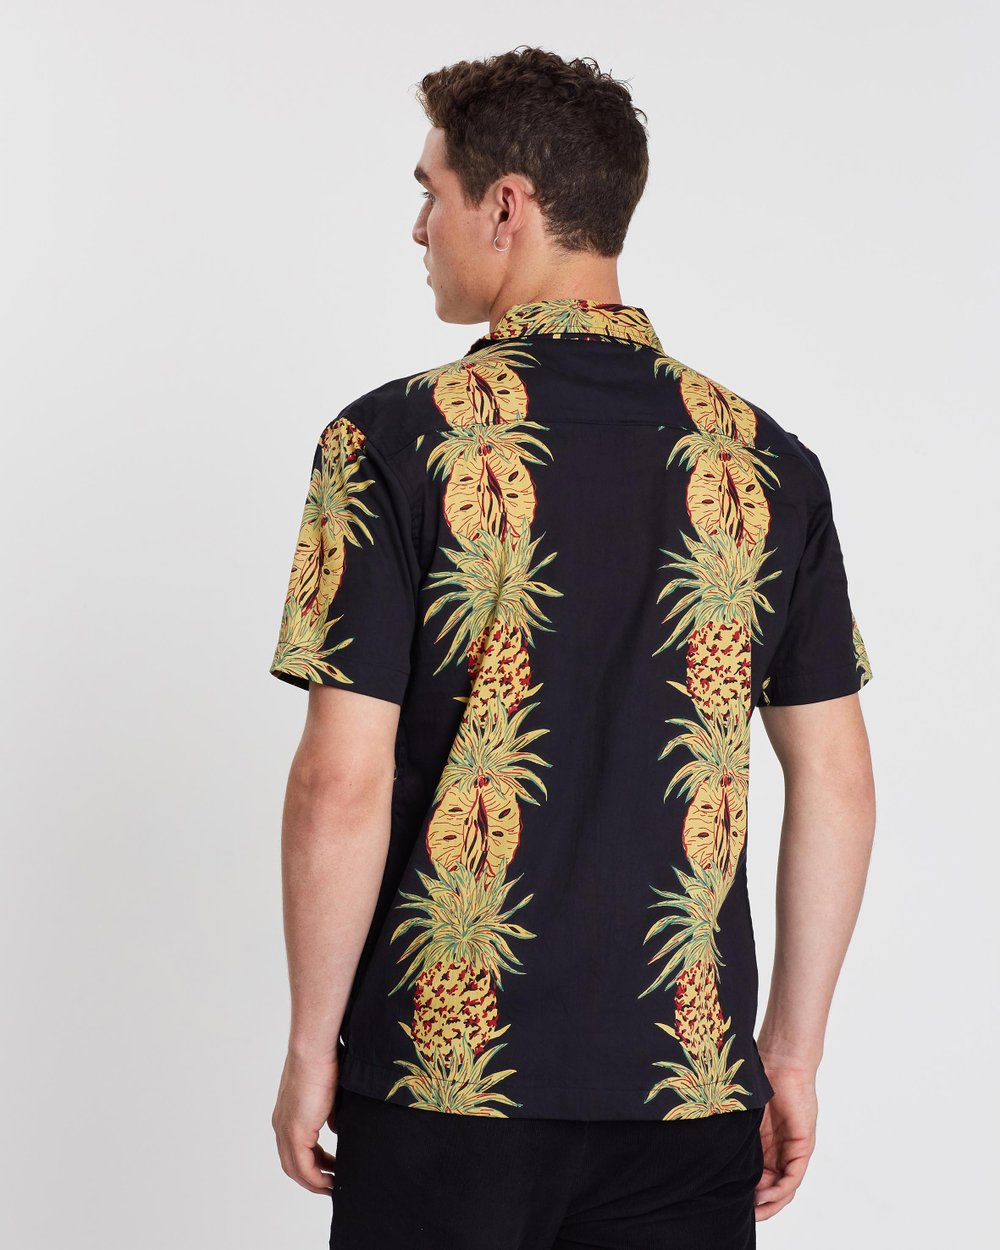 Pineapple Printed Shirt By Bellfield Online The Iconic Australia